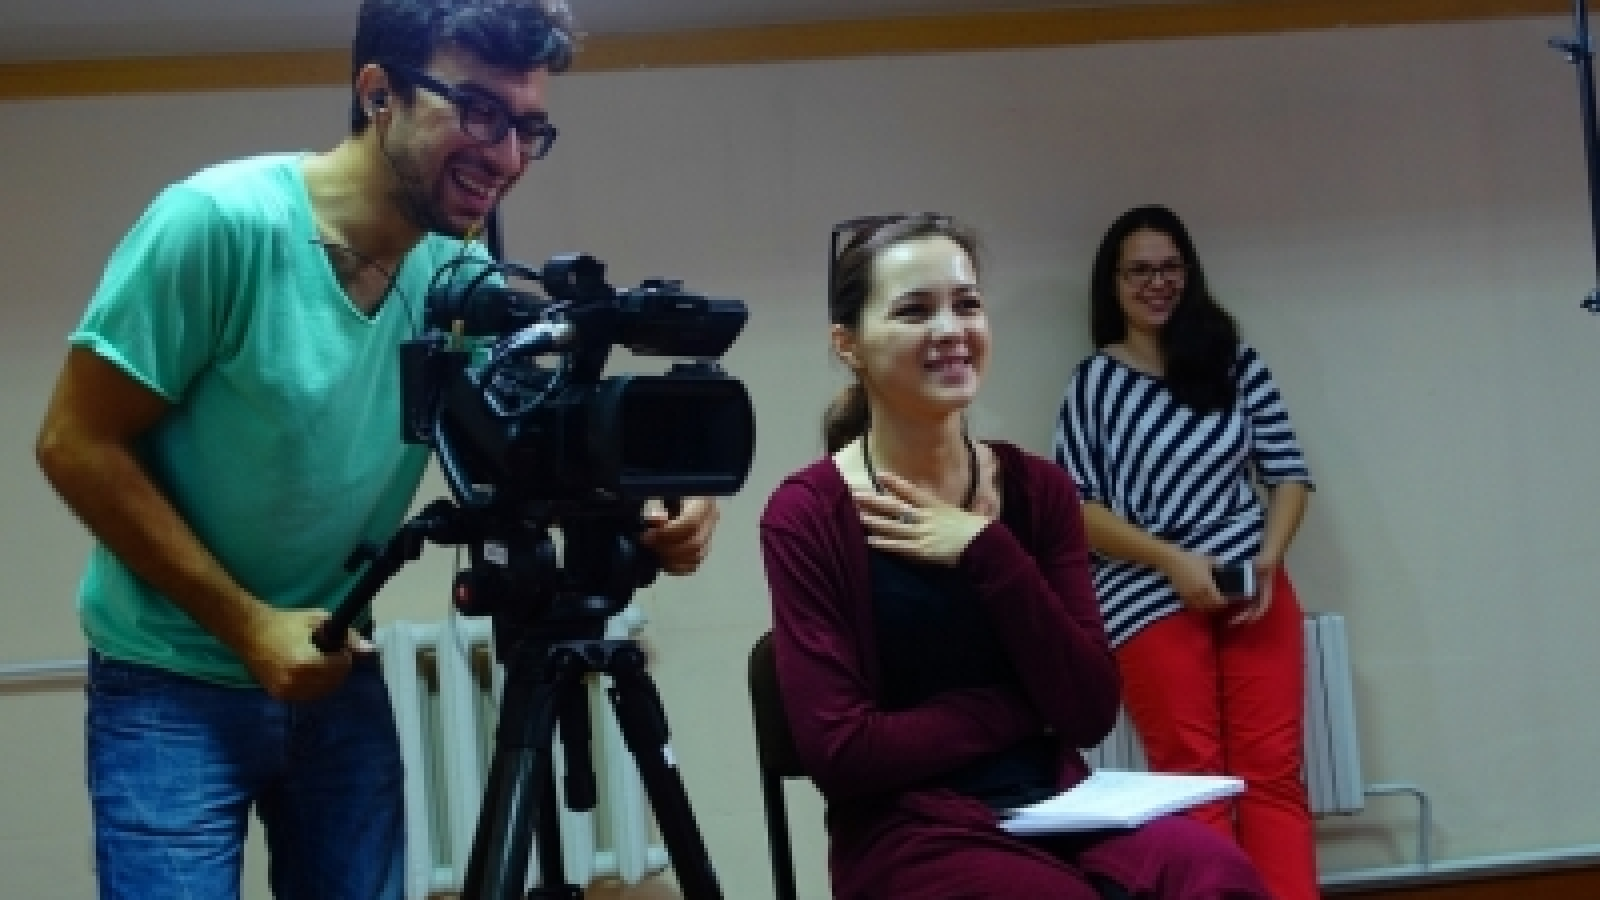 Georgia: journalists to learn about consumer rights and cultural stereotypes